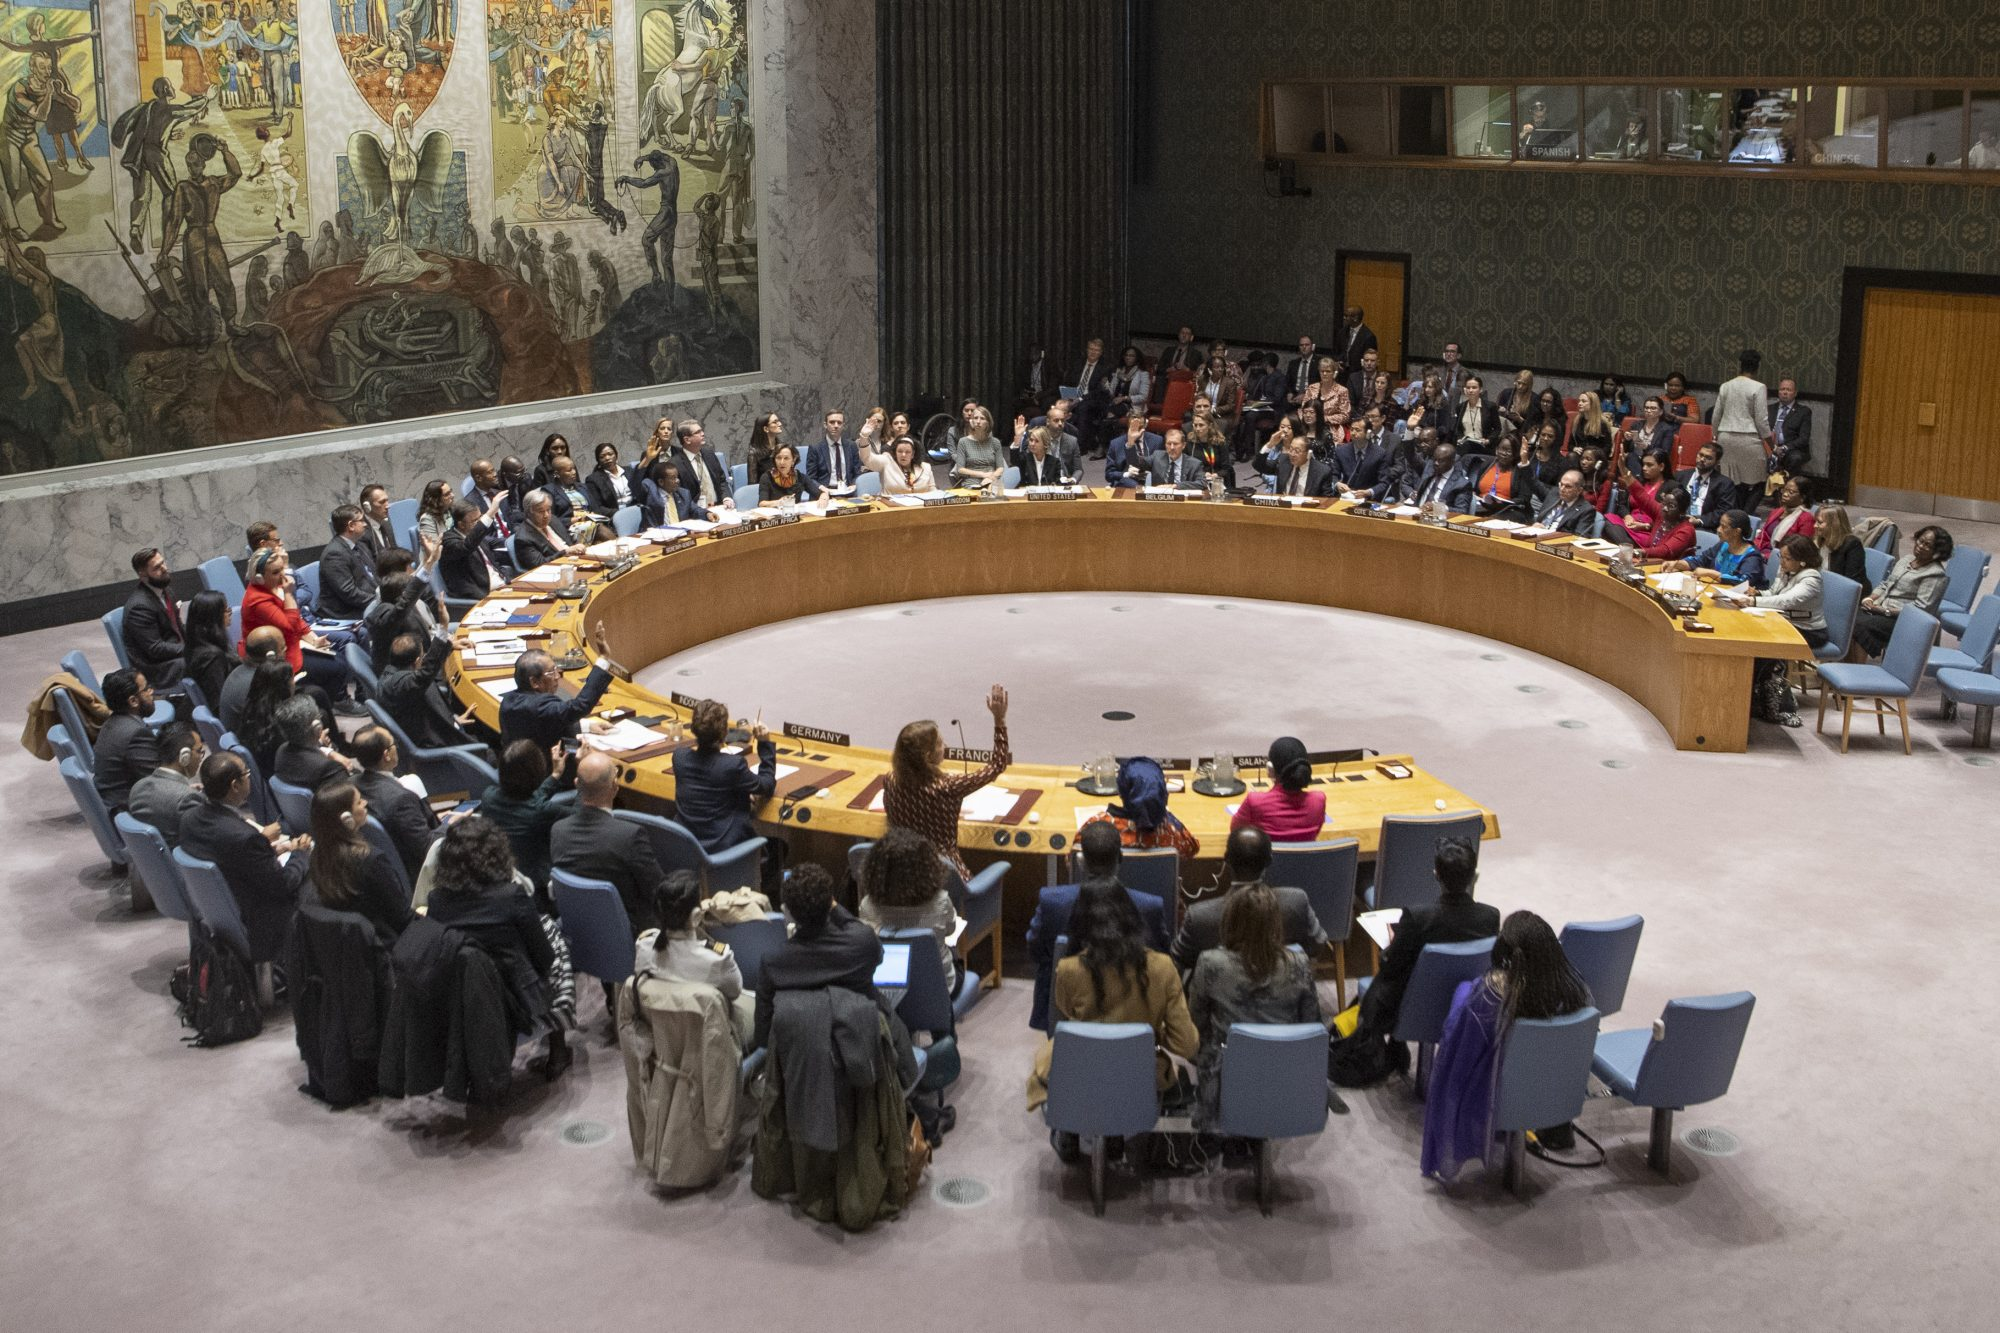 Analysis of the 2019 Women, Peace and Security Open Debate